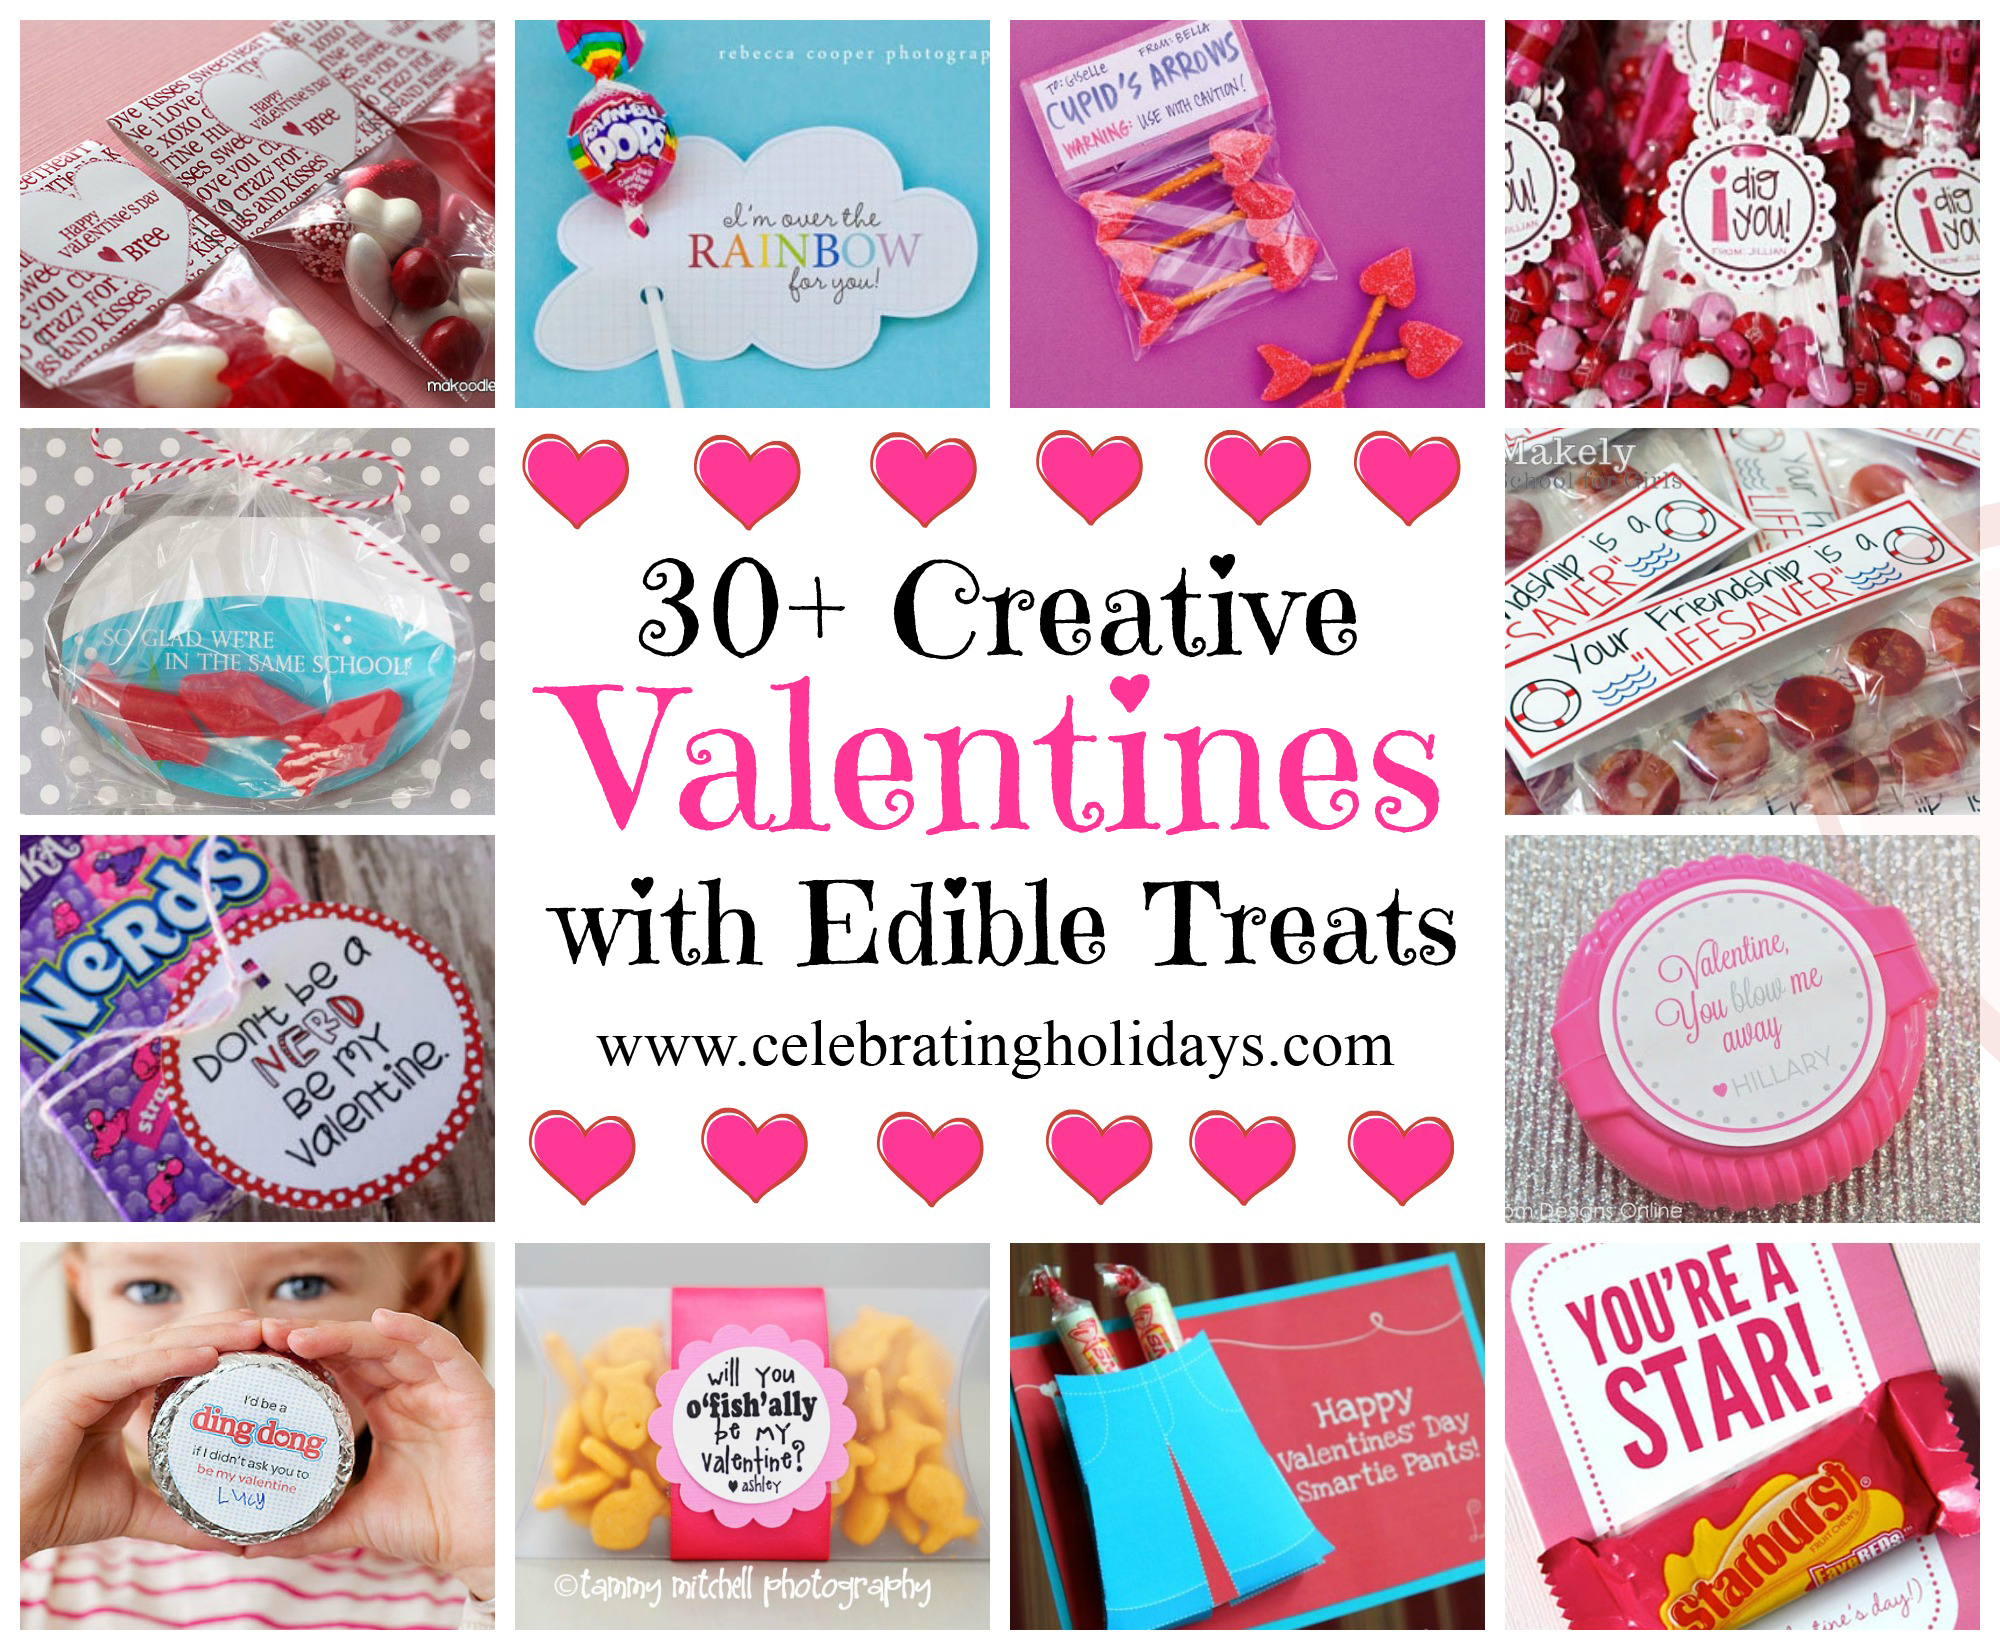 Creative ideas for valentines day for her